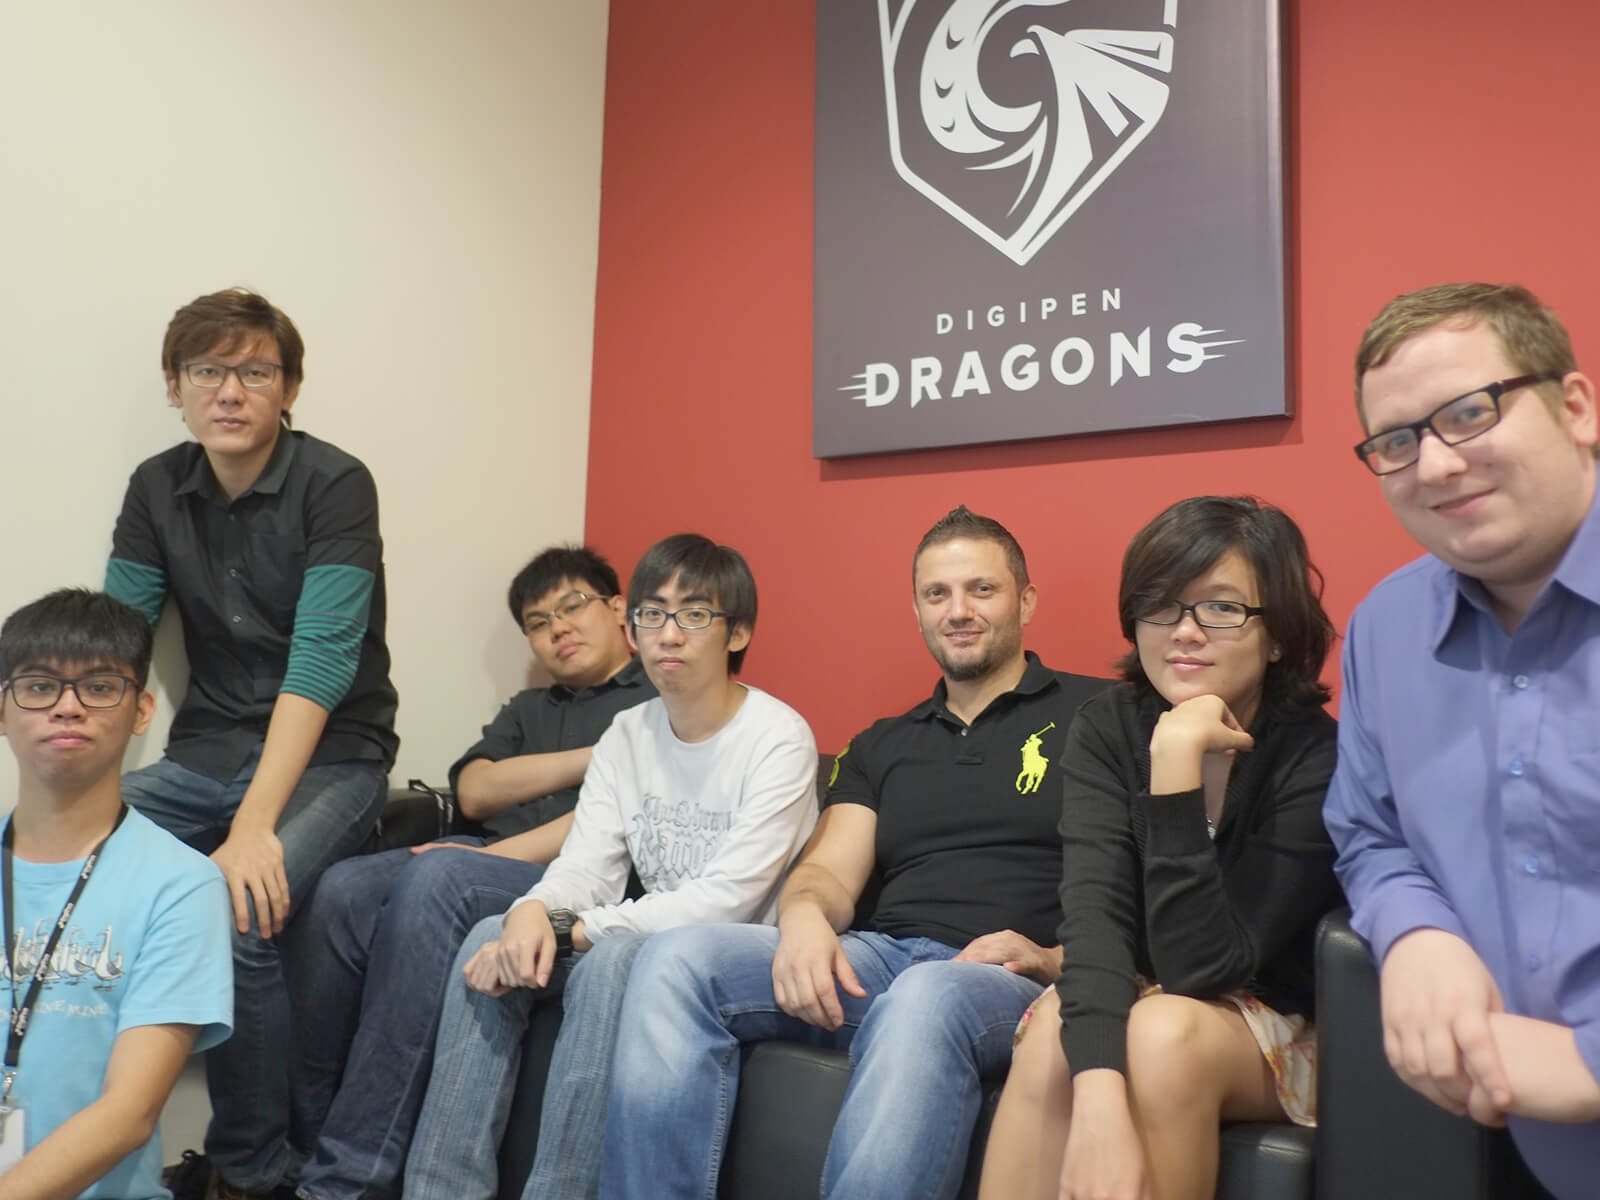 Members of the DigiPen (Singapore) Research and Development team sit at a coach below a poster of the DigiPen Dragons logo